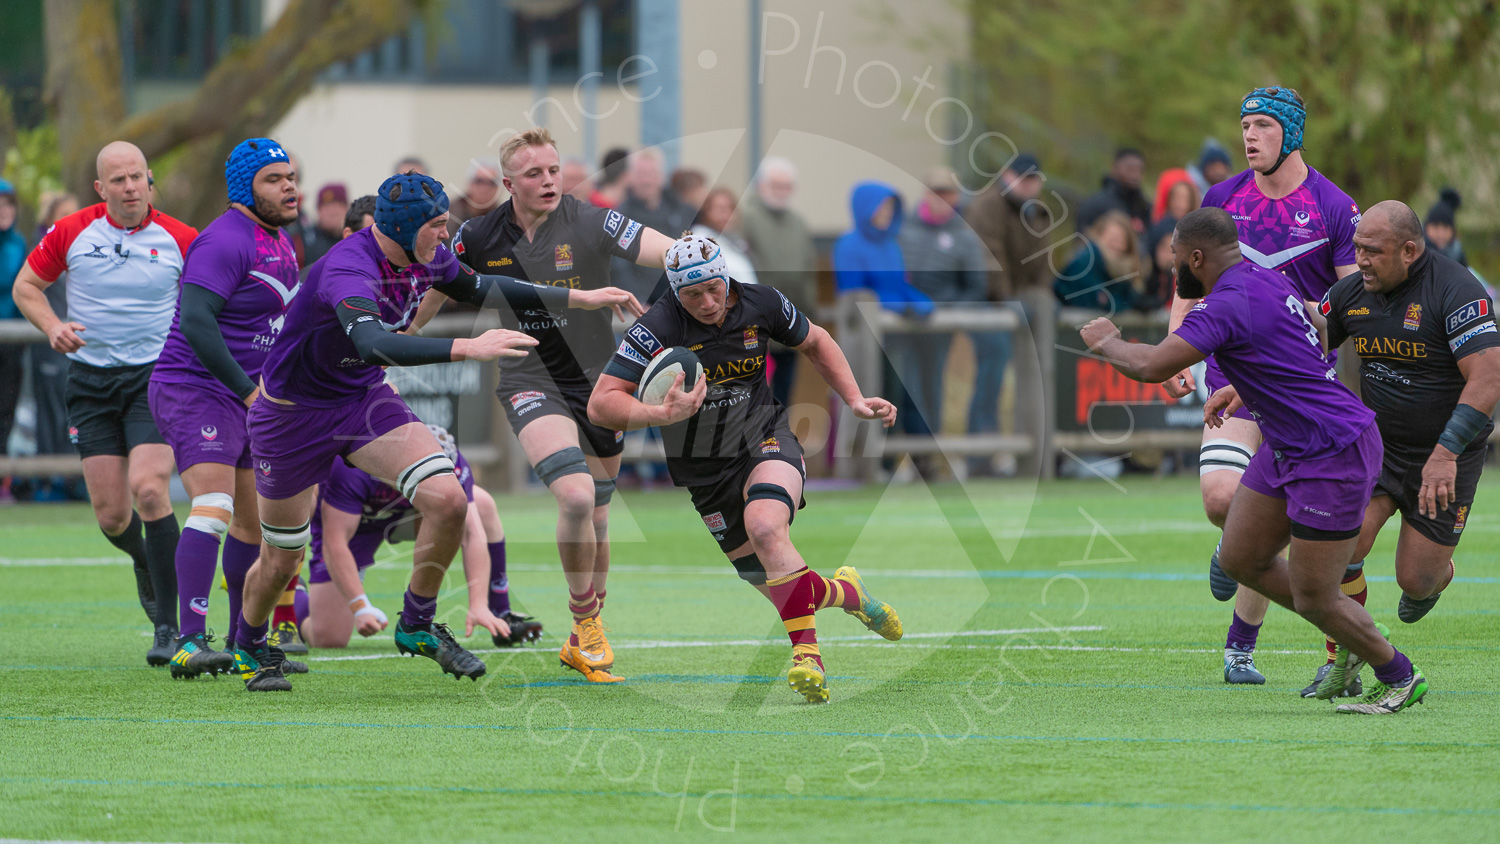 20190427 Loughborough vs Ampthill 1st XV #5963